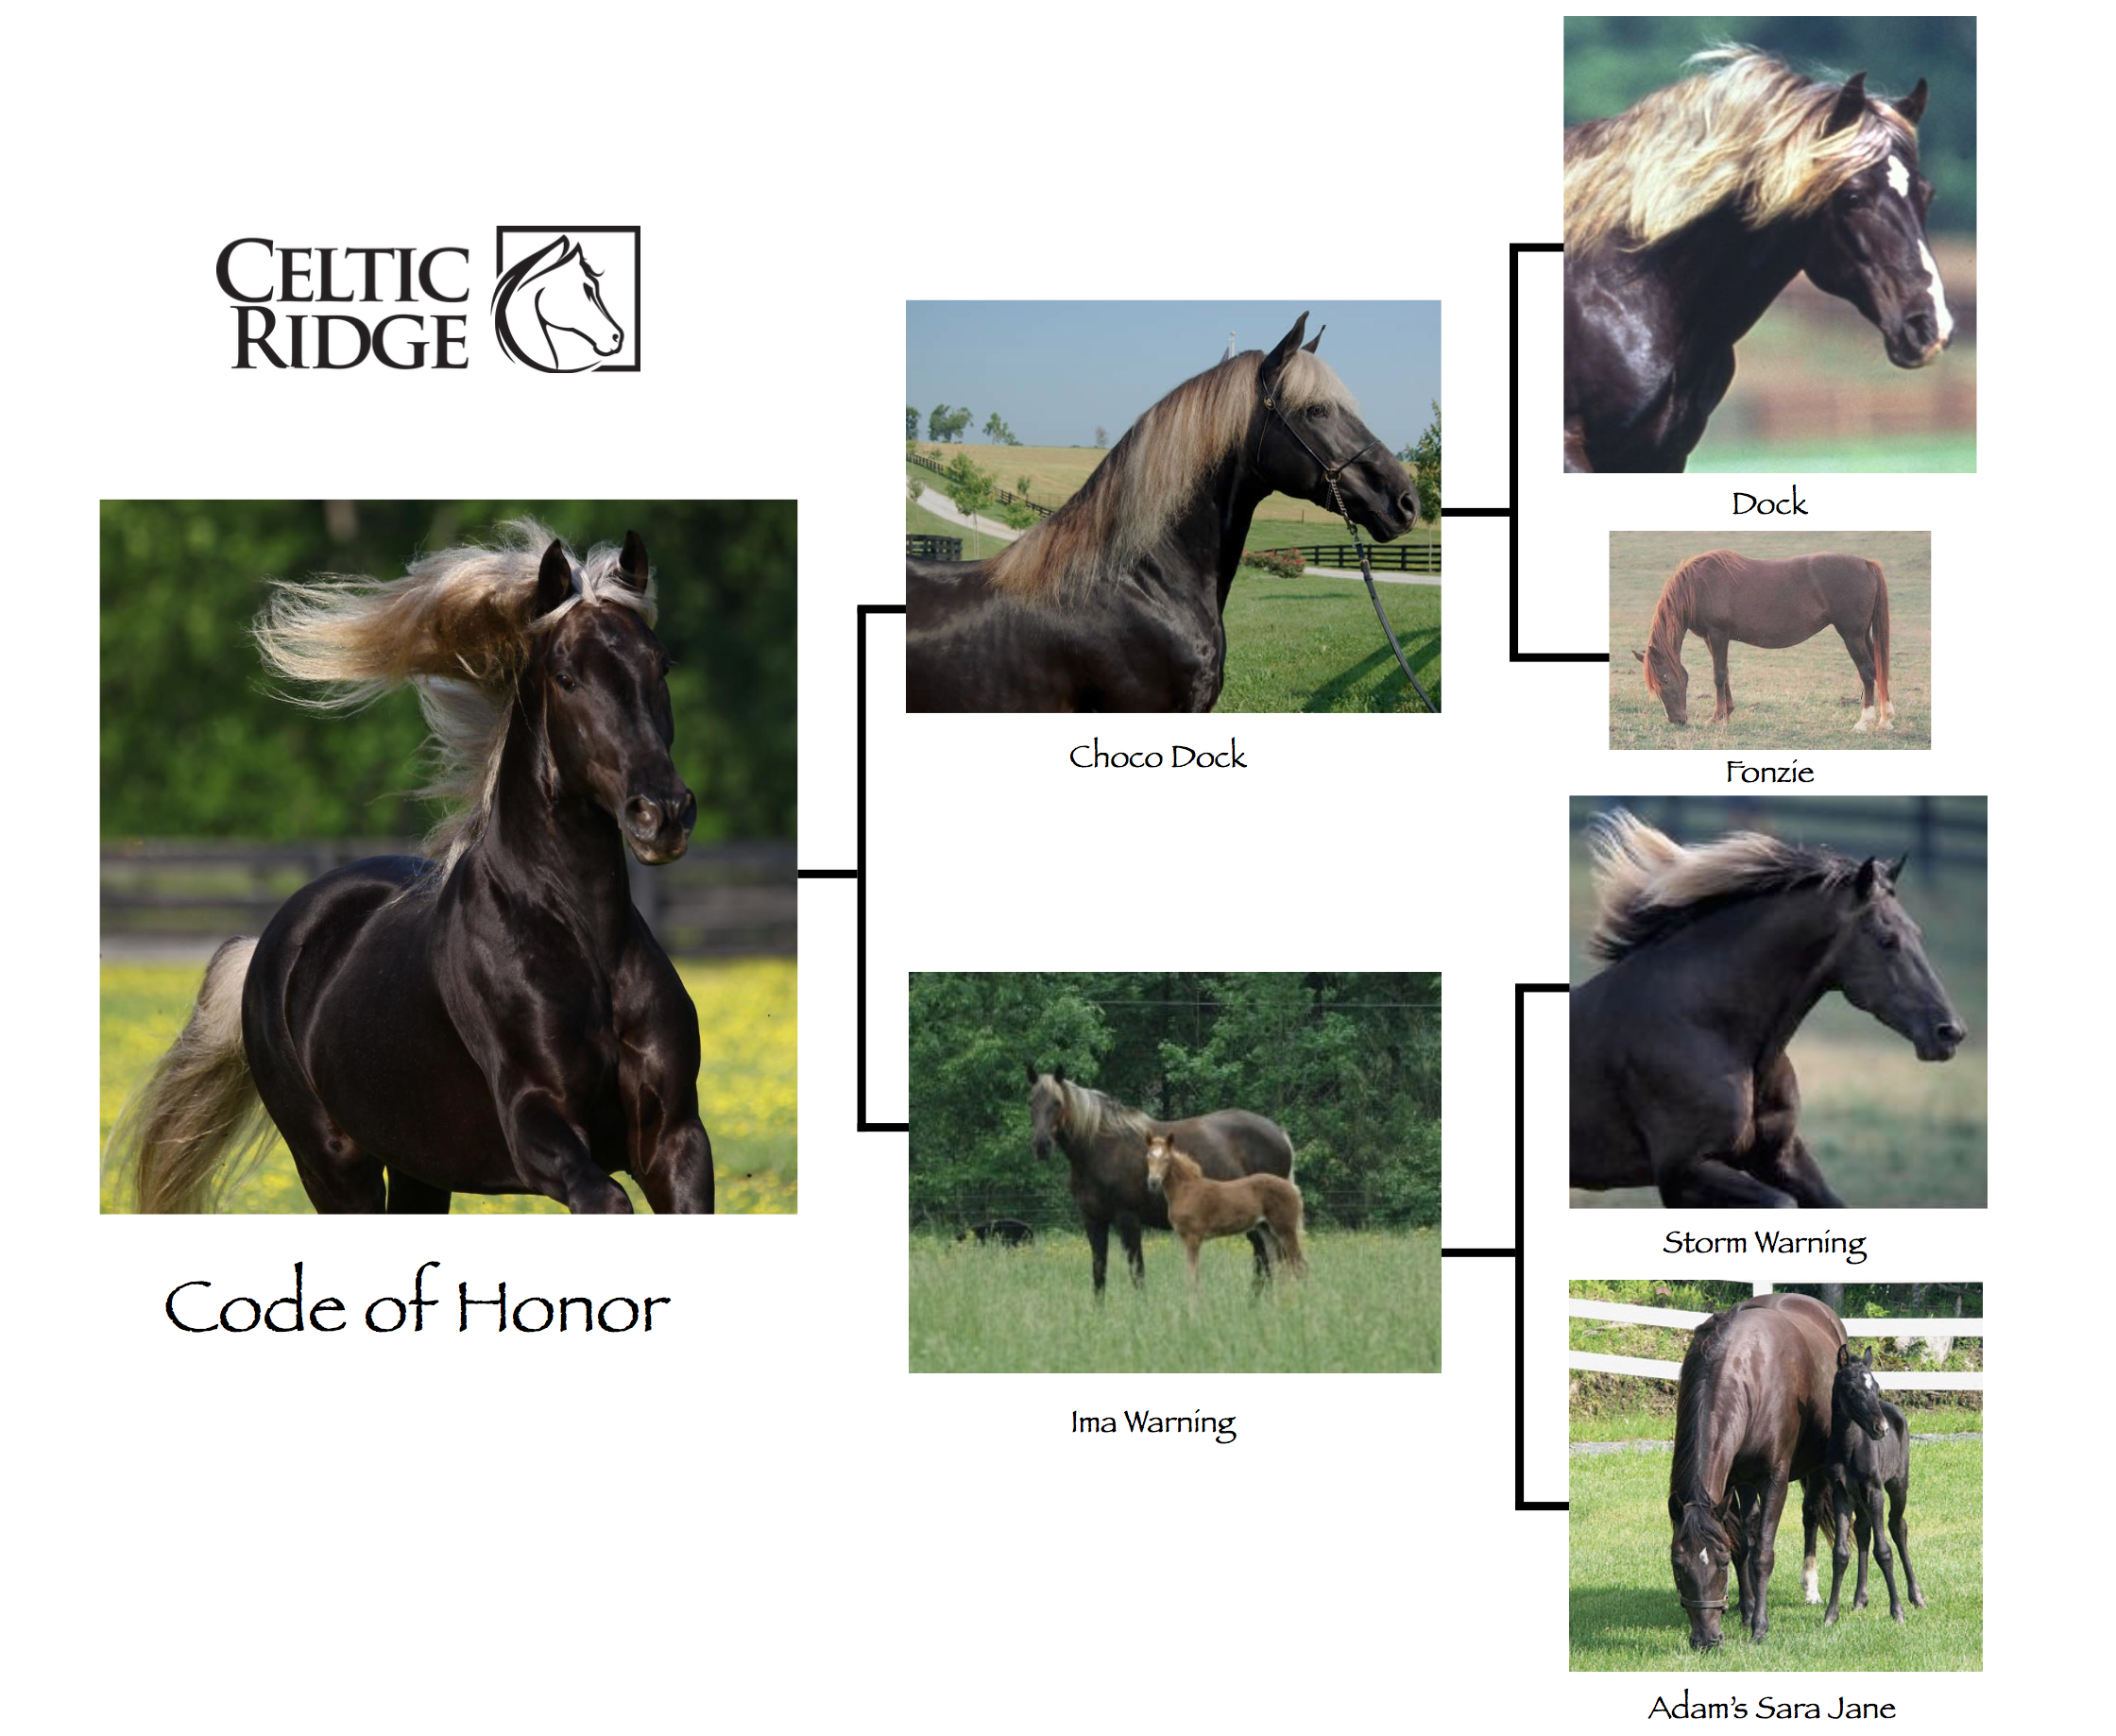 Code of Honor's Pedigree